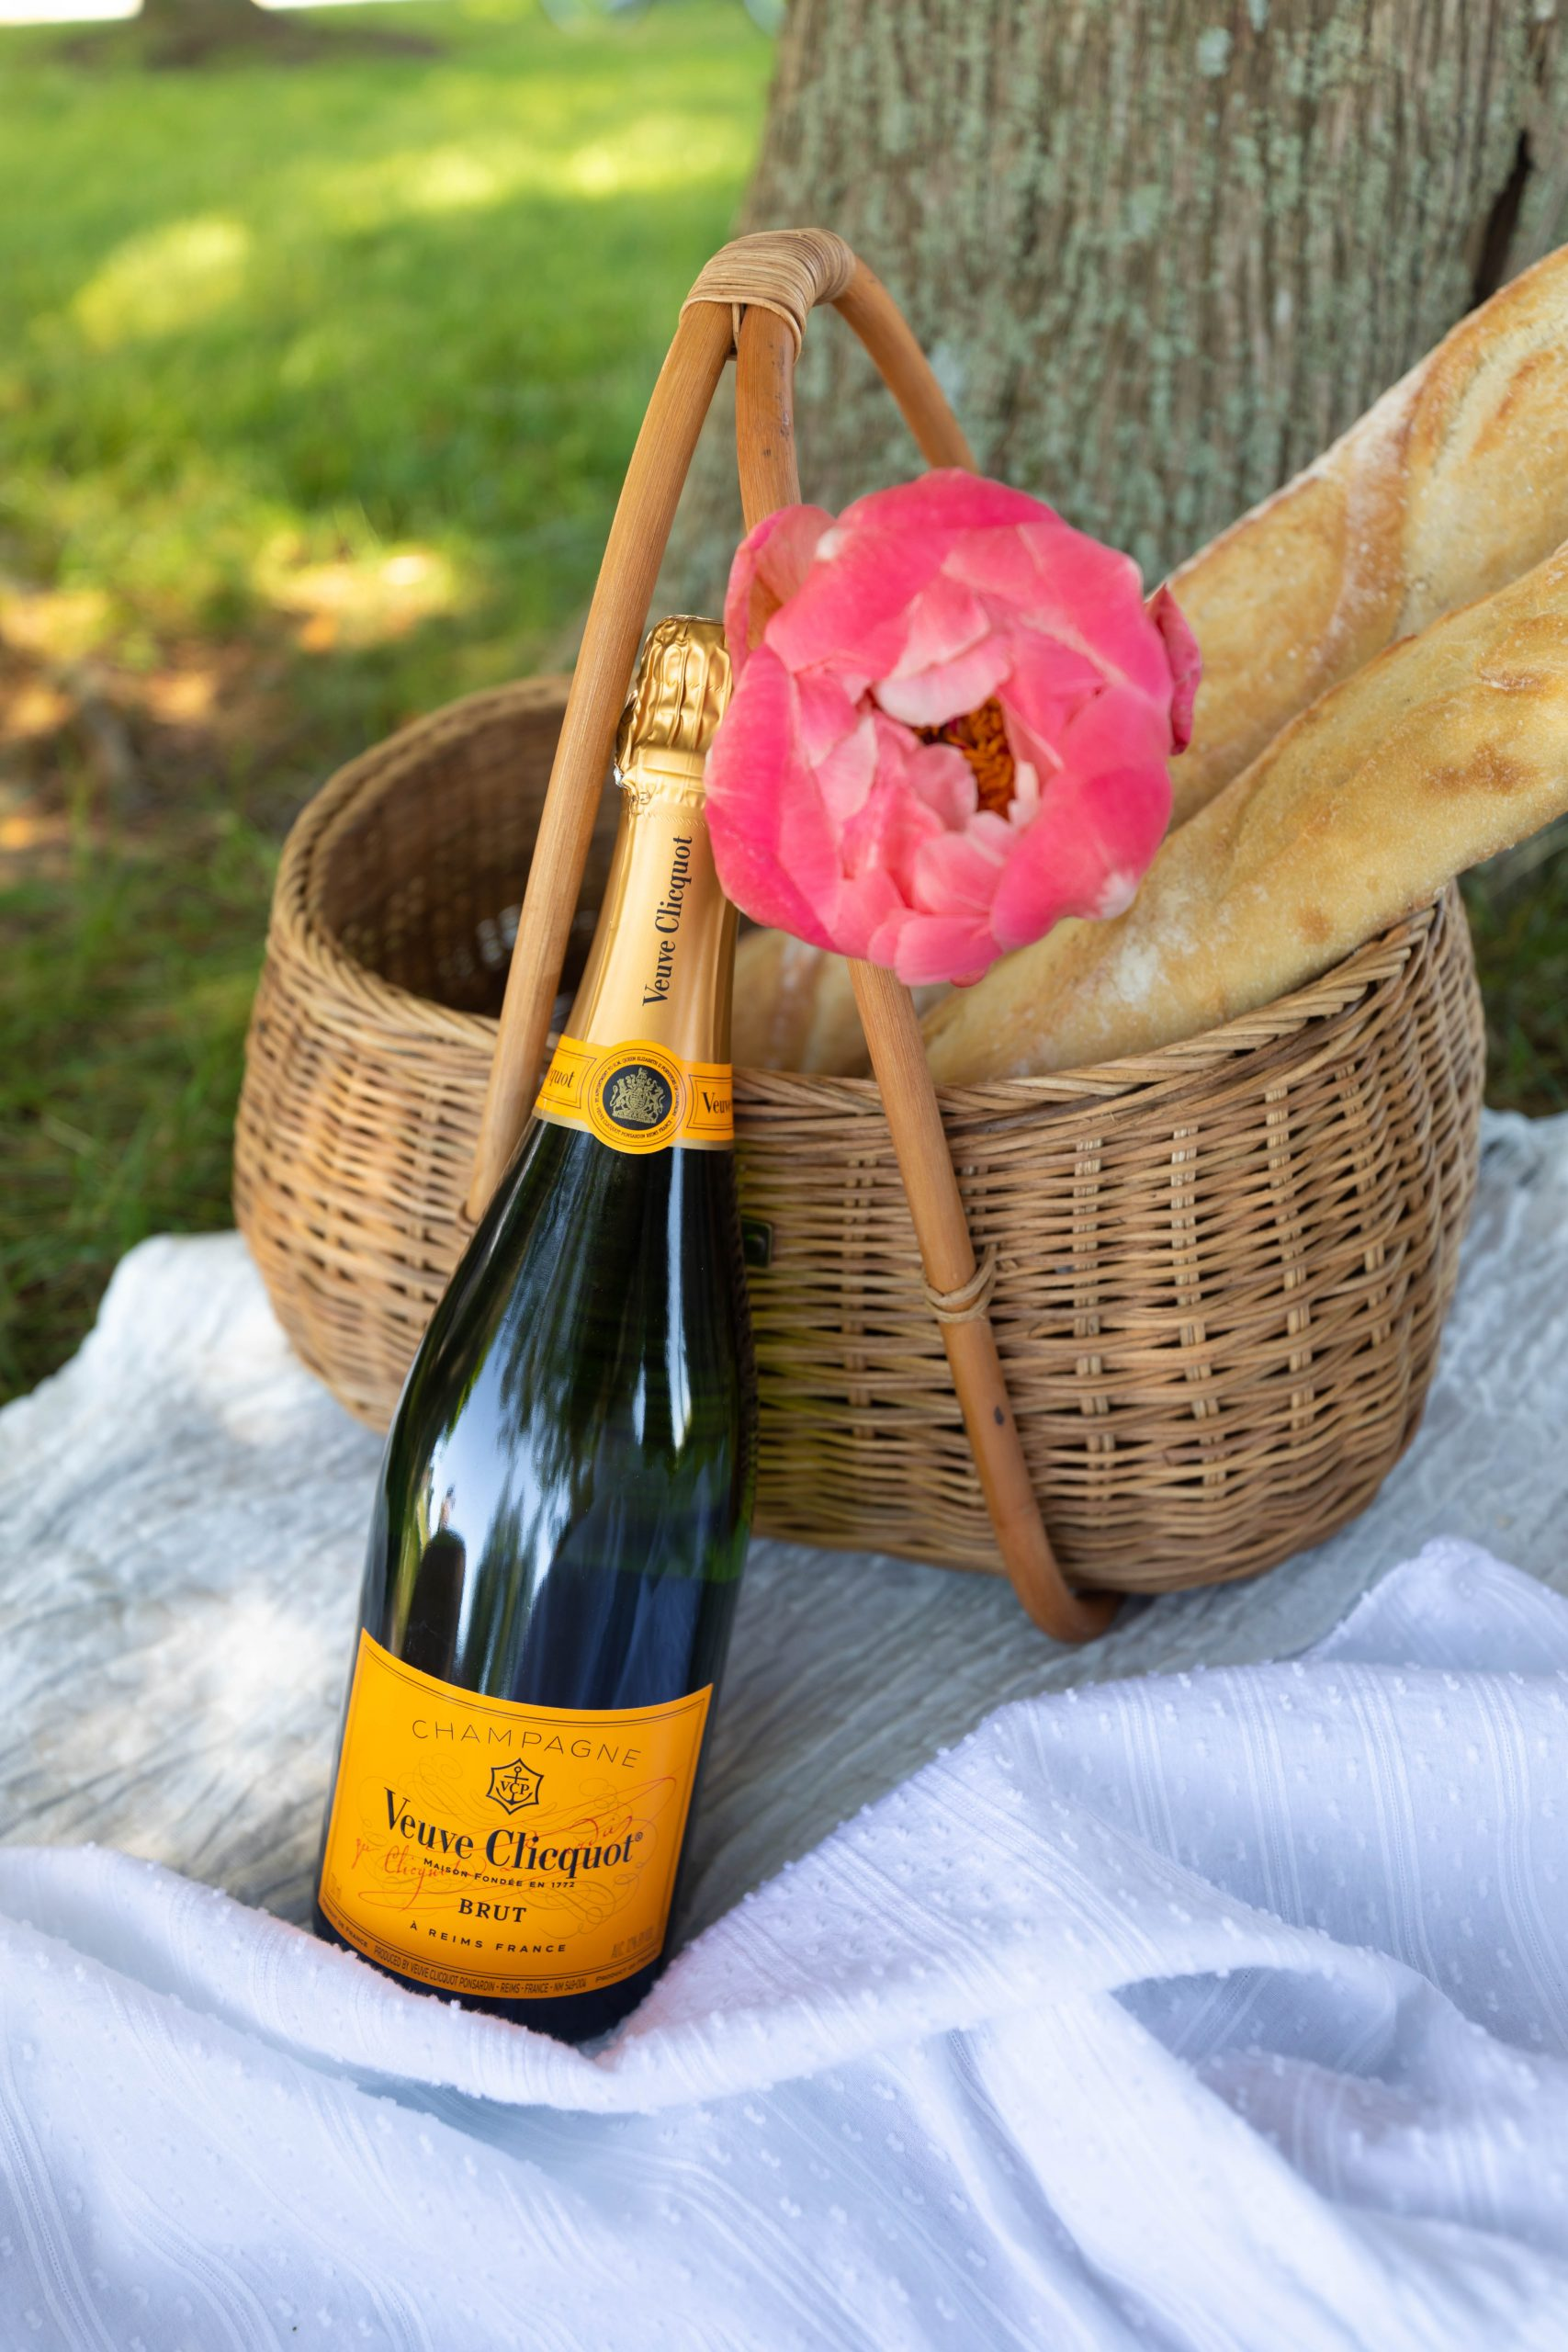 Veuve Clicquot Champagne Ollie Ella Basket with Bageuttes and Peonies Swiss Dot Dress from Duffield Lane by Annie Fairfax